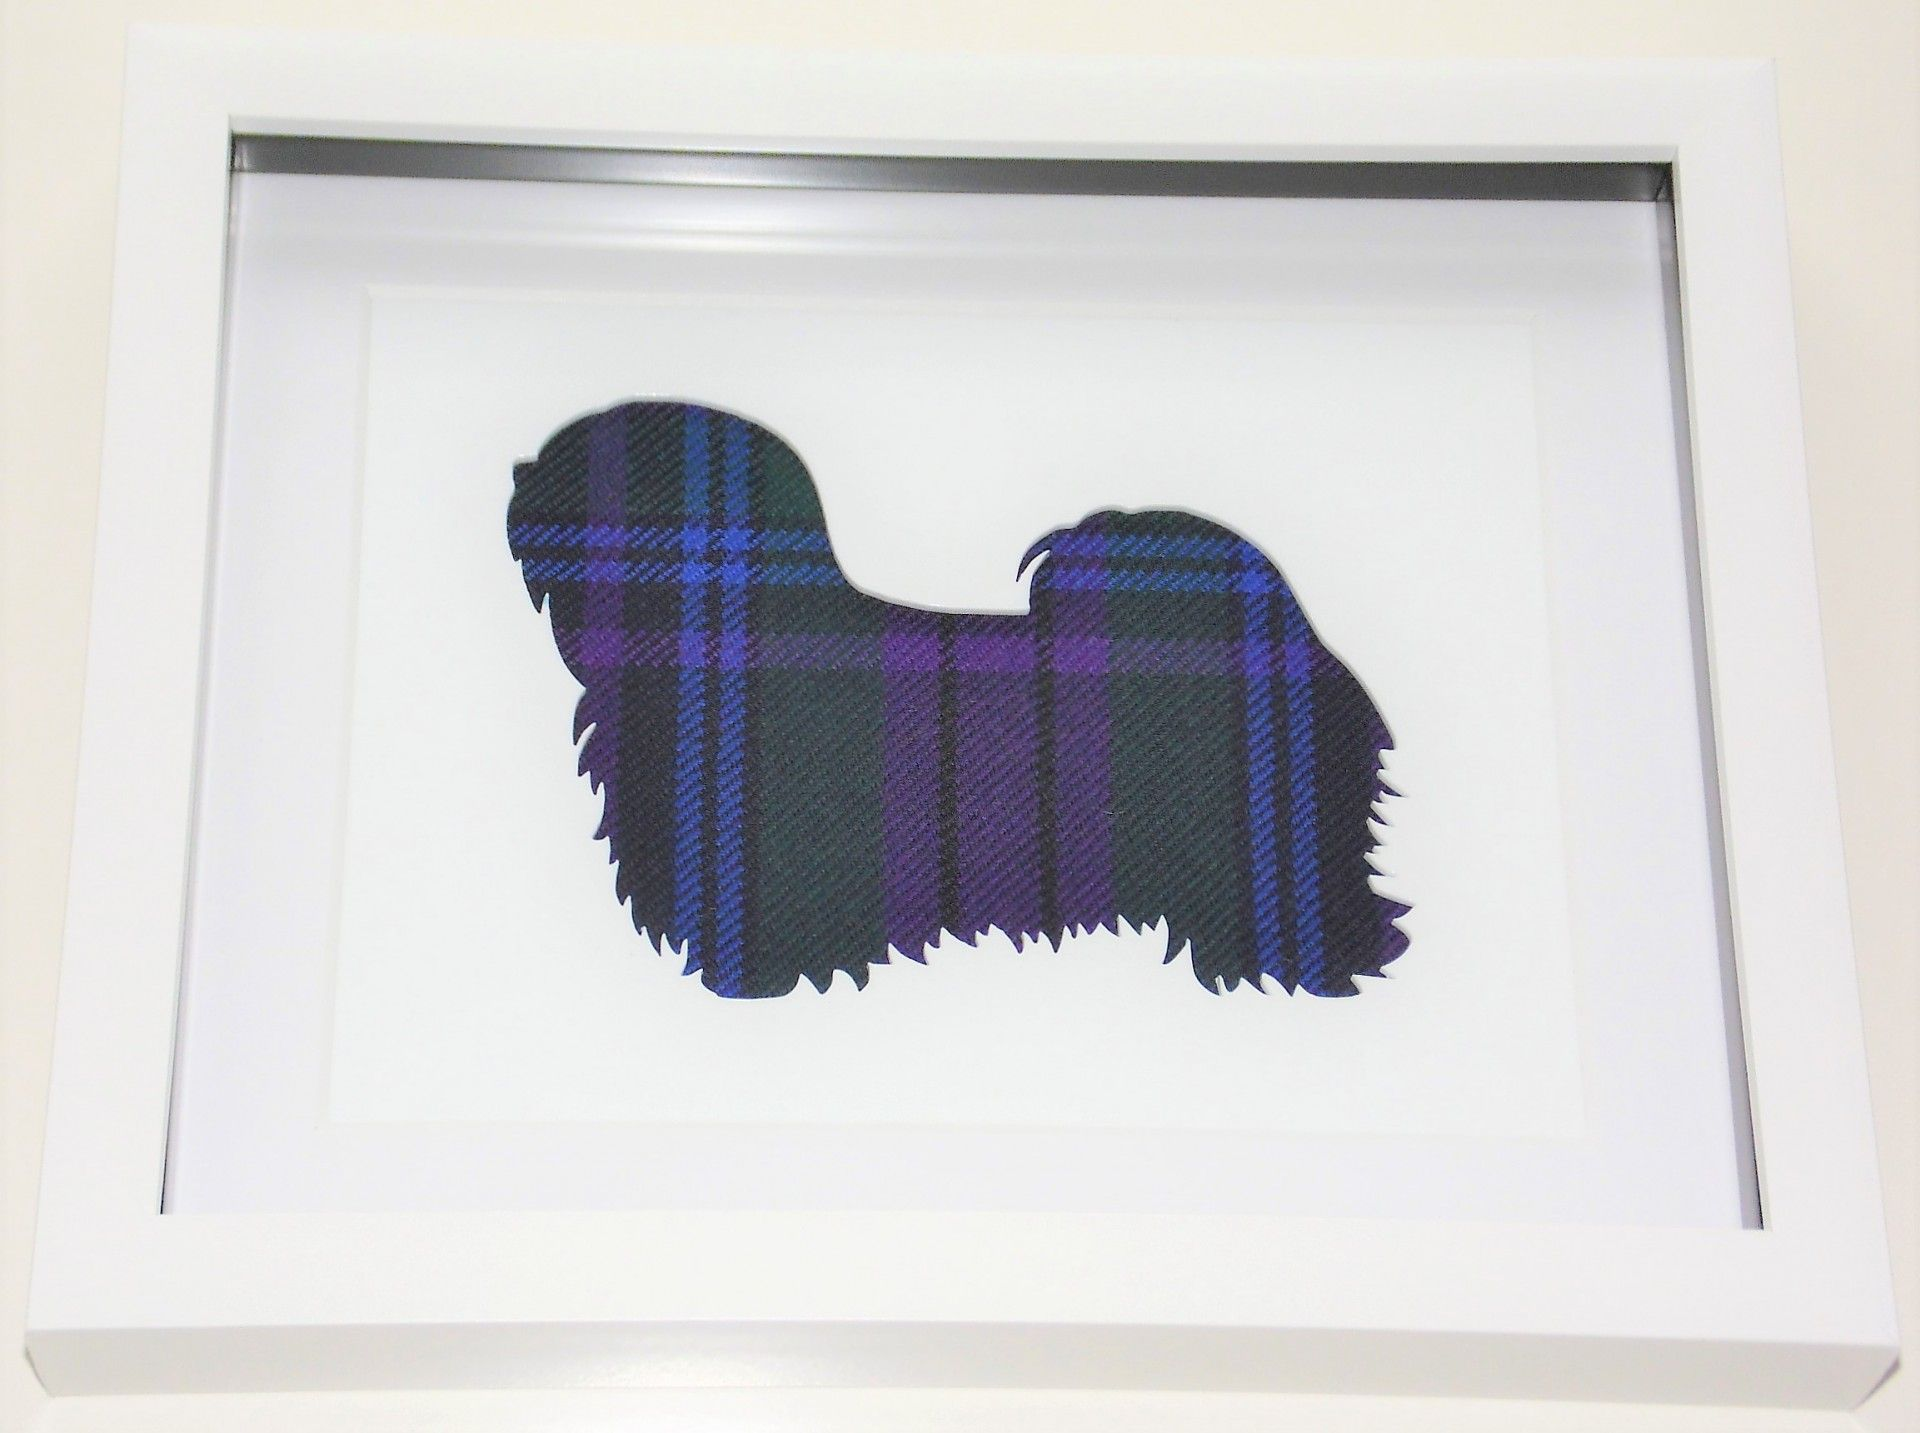 Lhasa apso tartan cut out